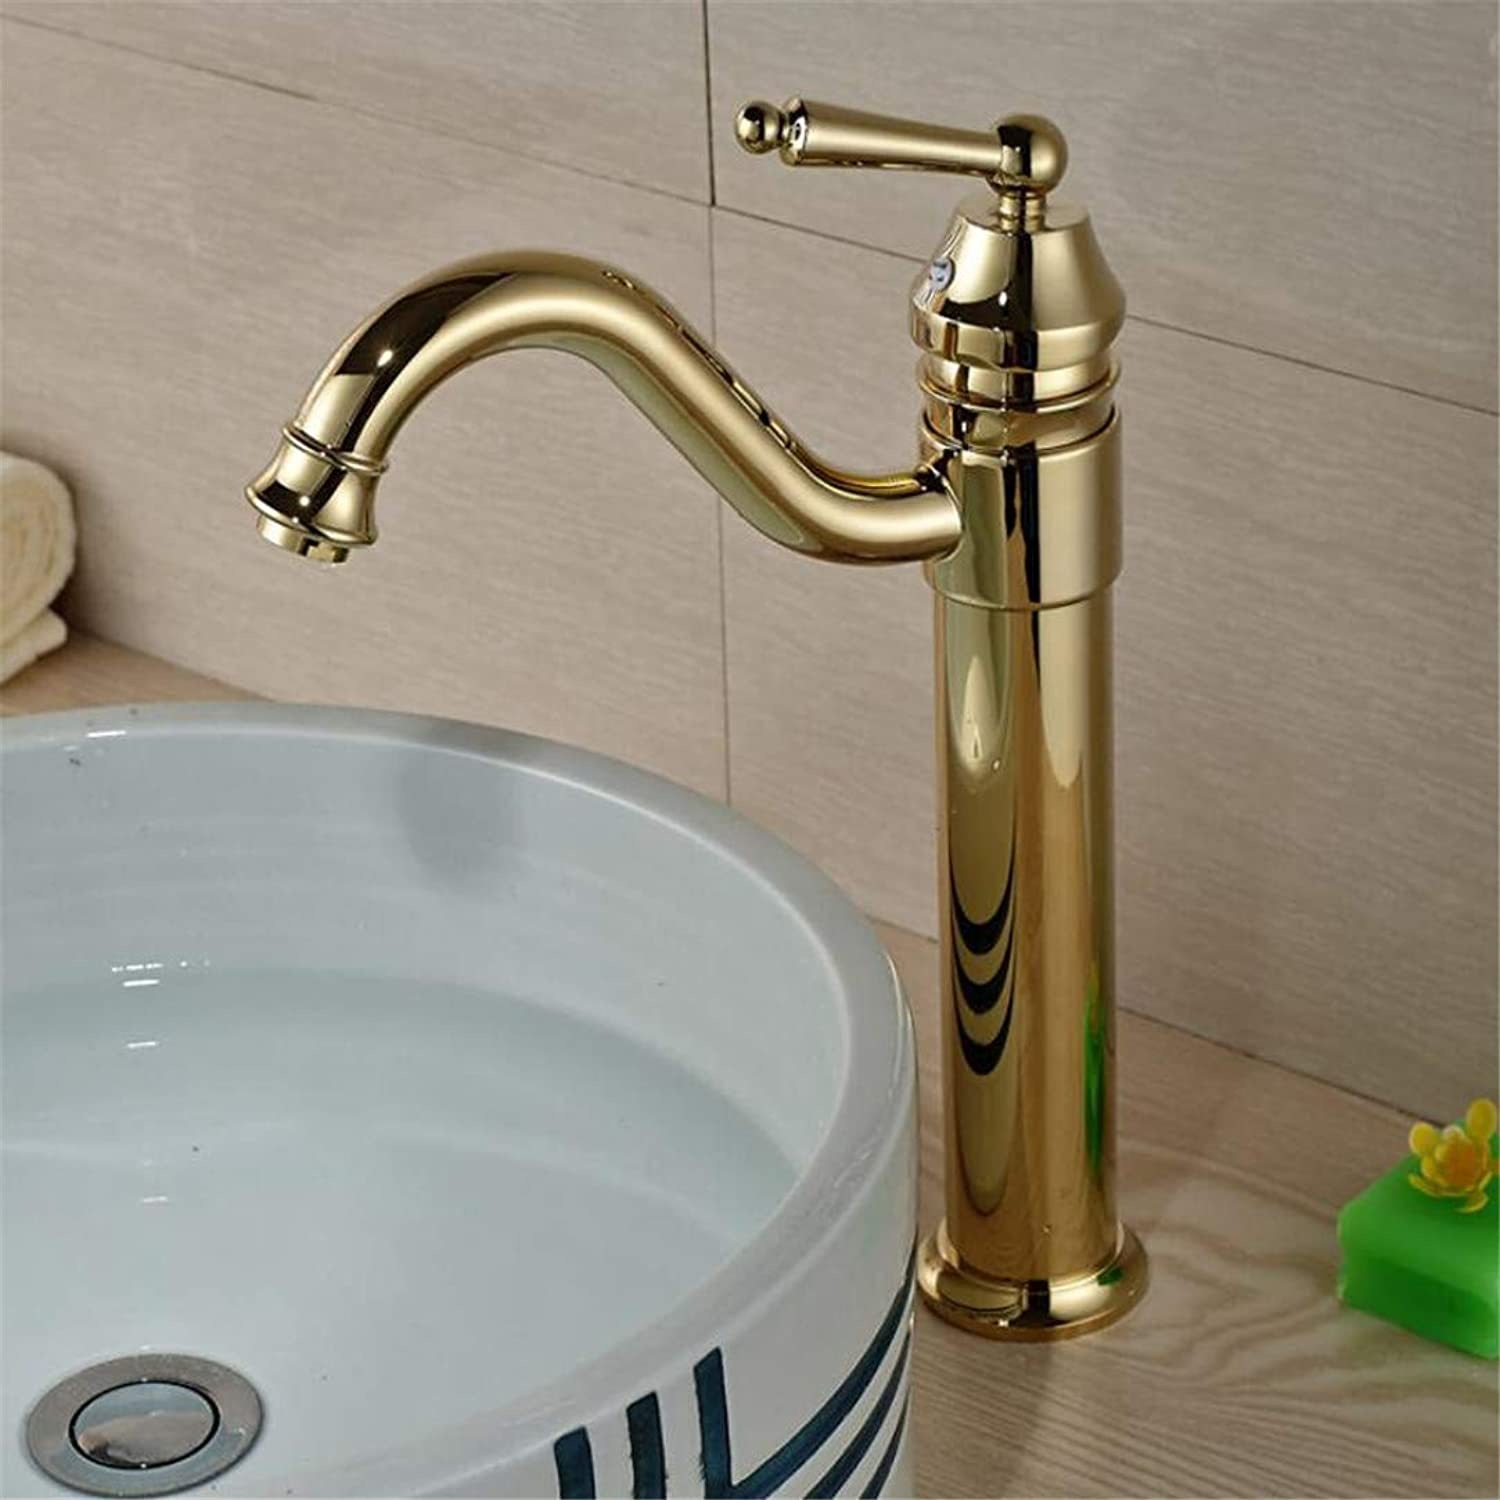 Faucet Washbasin Mixer Luxury Brass golden Single Hole Bathroom Sink Faucet High Quality